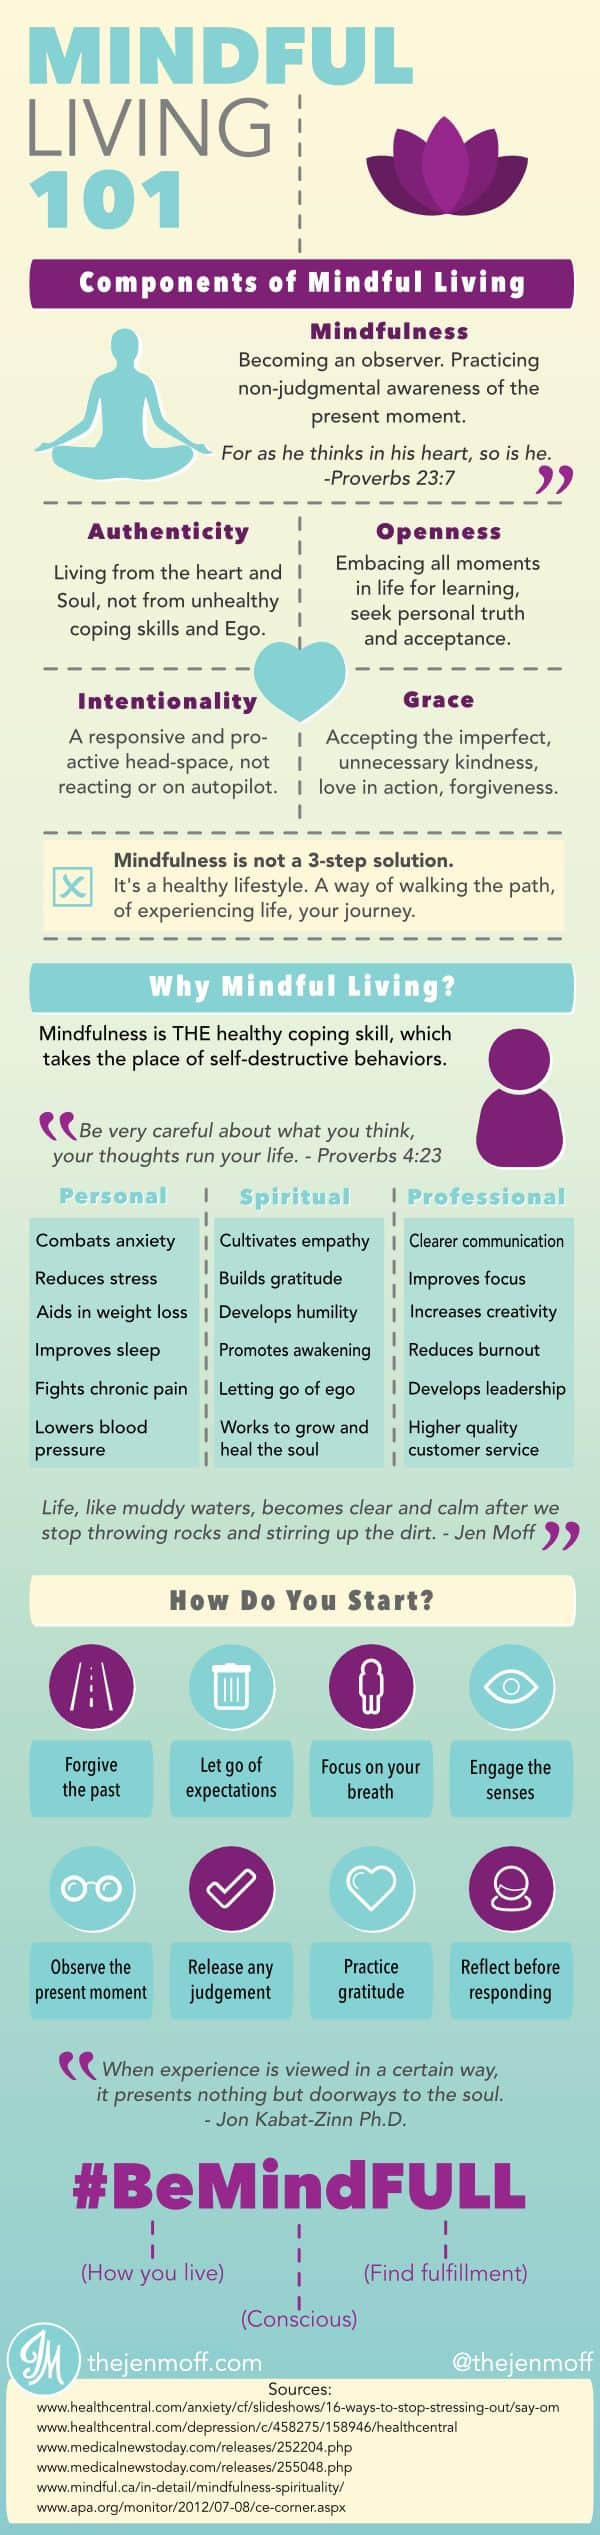 Mindful Living 101